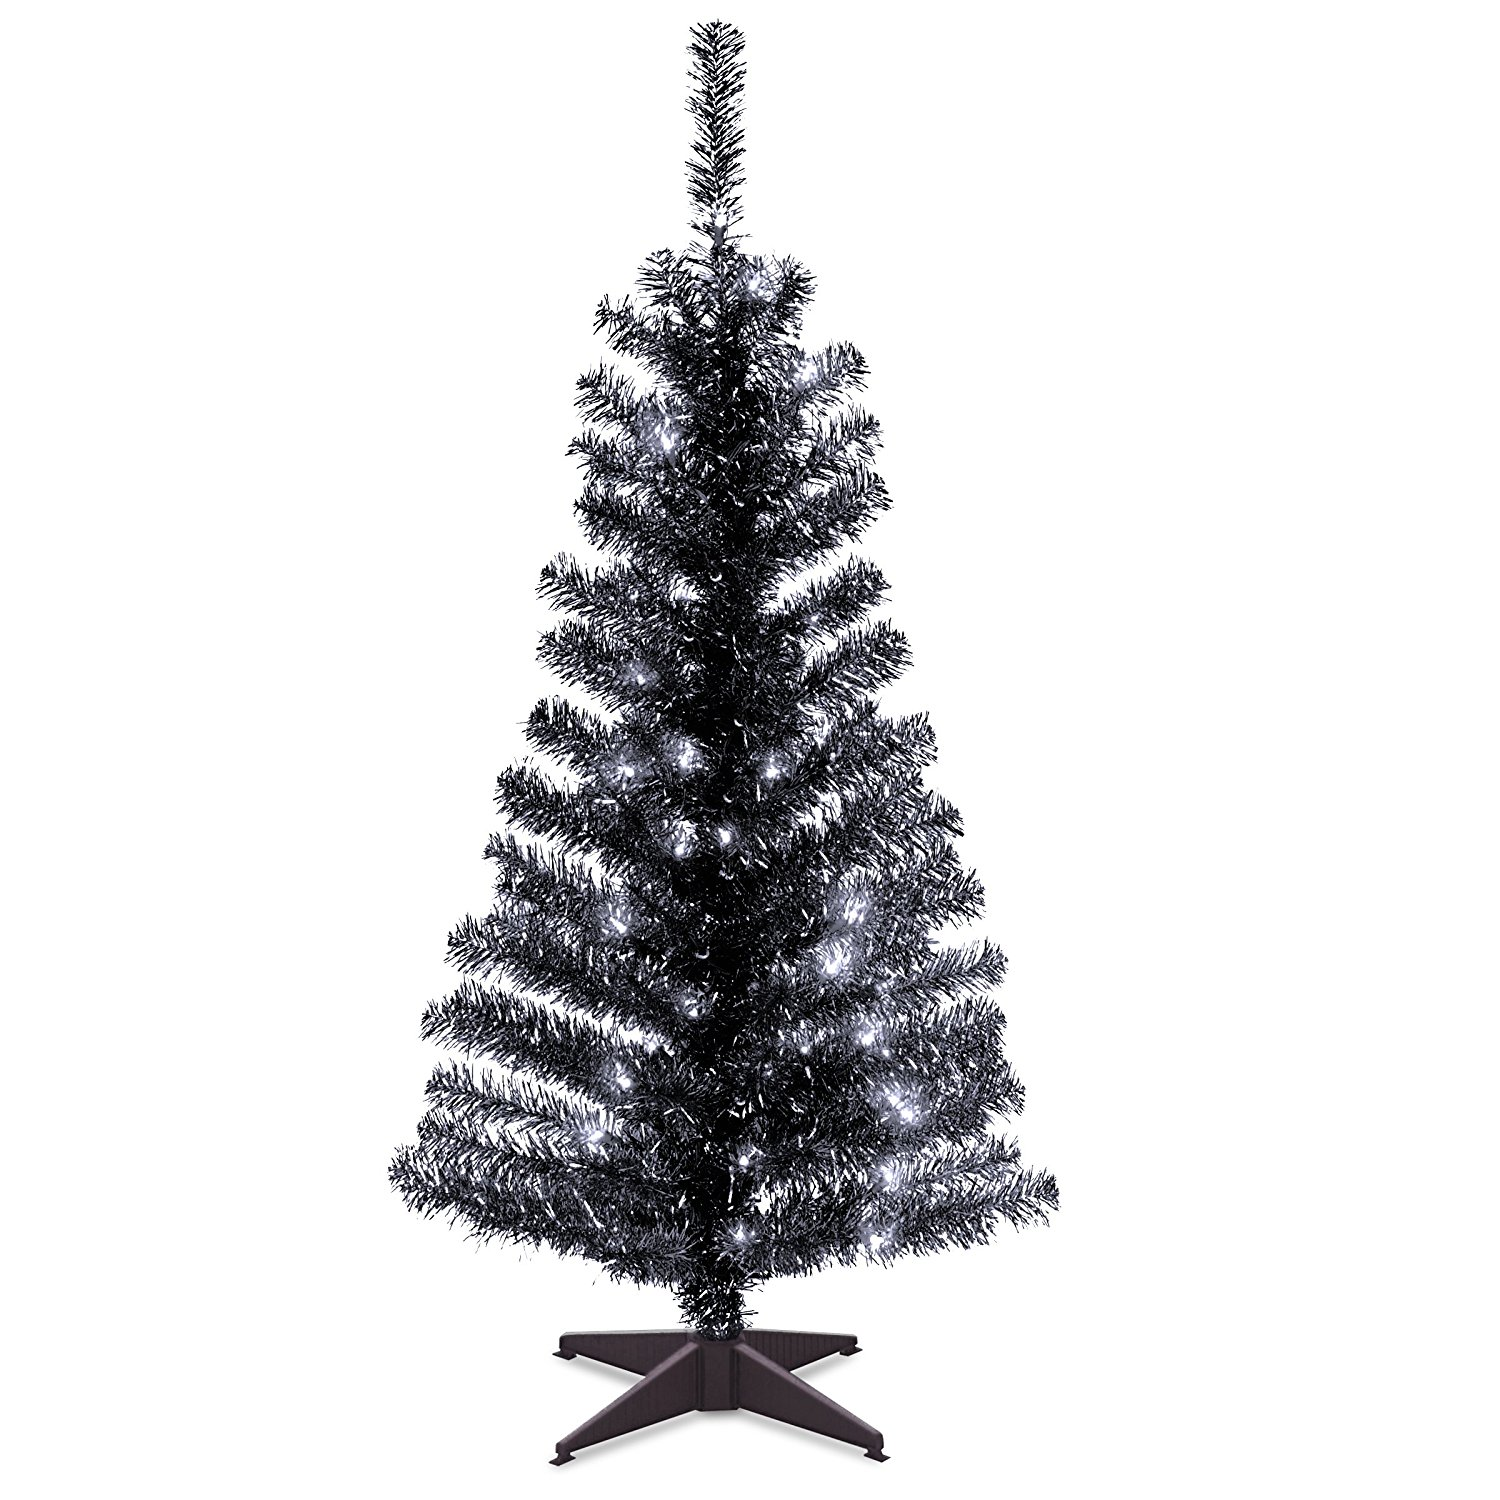 national black christmas tree 4 foot black tinsel with plastic stand and 70 clear lights you can shop it online now from amazon get it now request it - Christmas Tree Stand Amazon